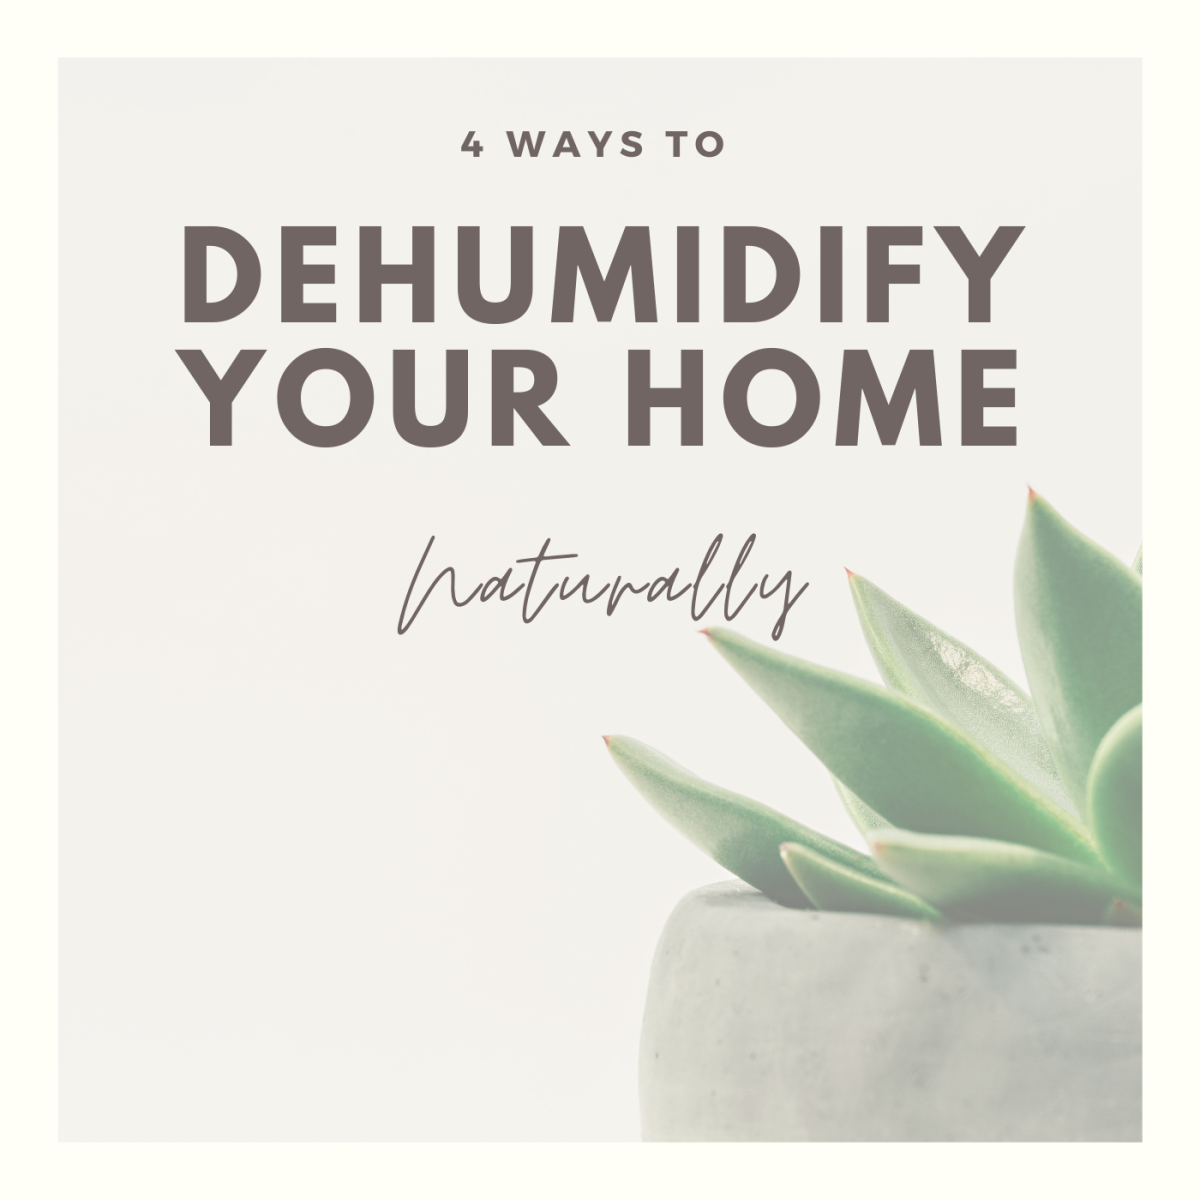 Learn these 4 easy tips to keep your home at a comfortable level of humidity.